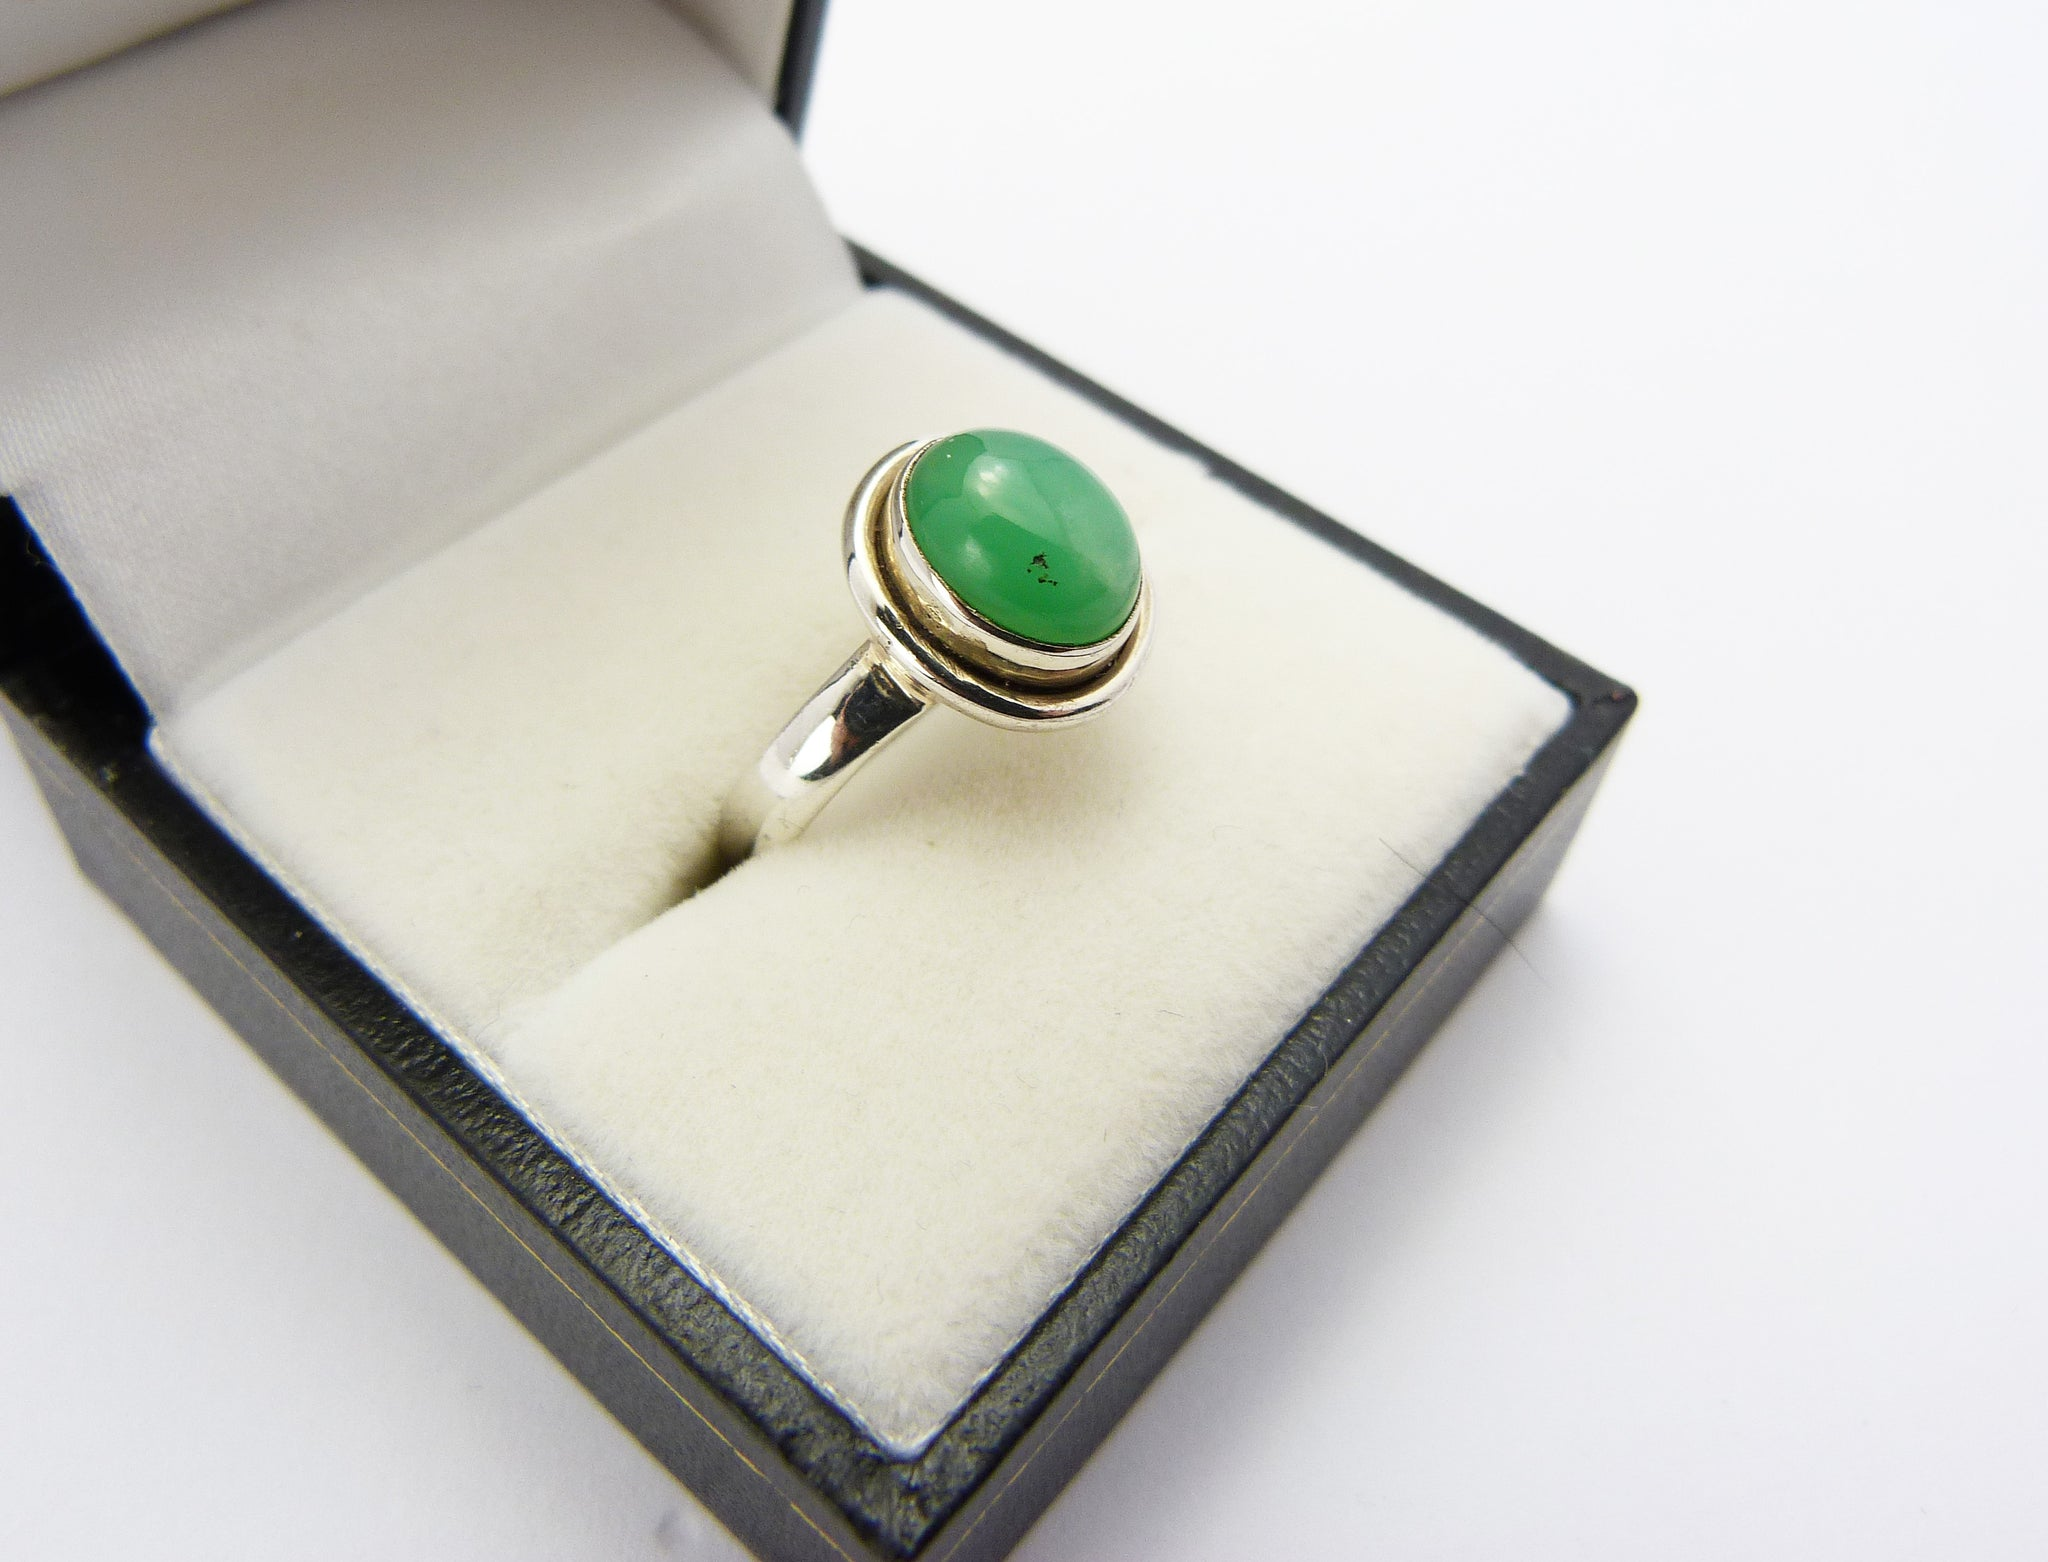 Vintage Sterling Silver 925 & Chrysoprase Ring UK Size O Half - Silver Green Chalcedony Ring